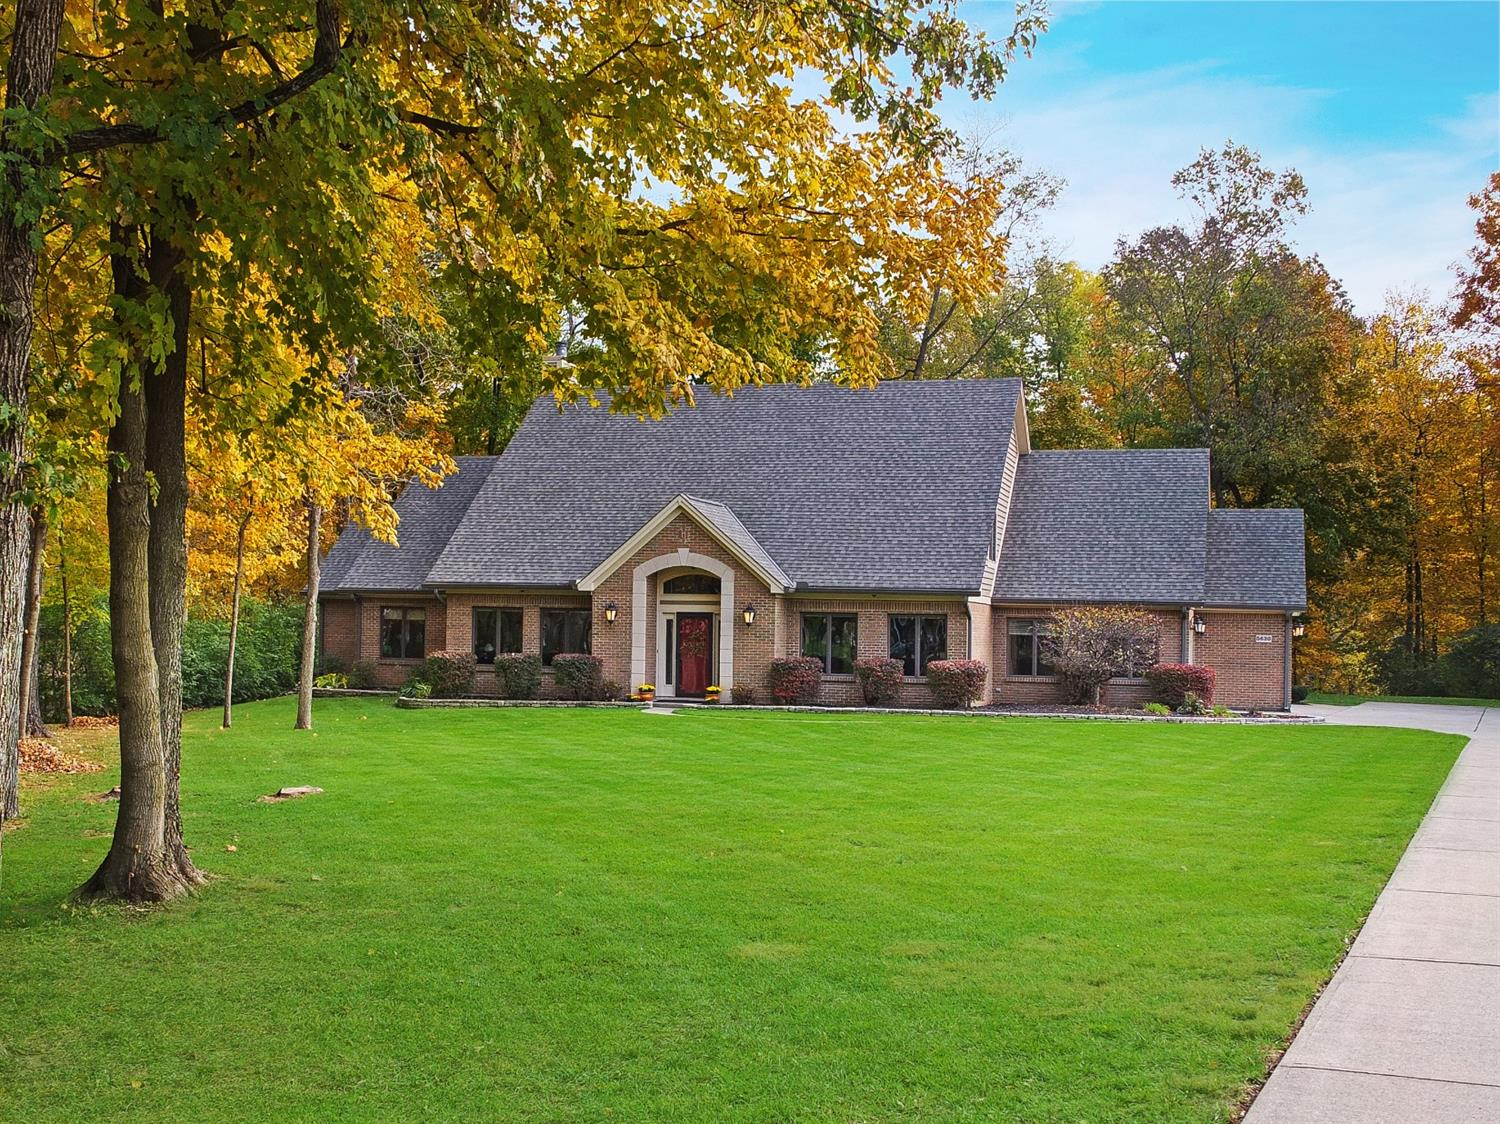 5630 Whispering Wy Clear Creek Twp., OH